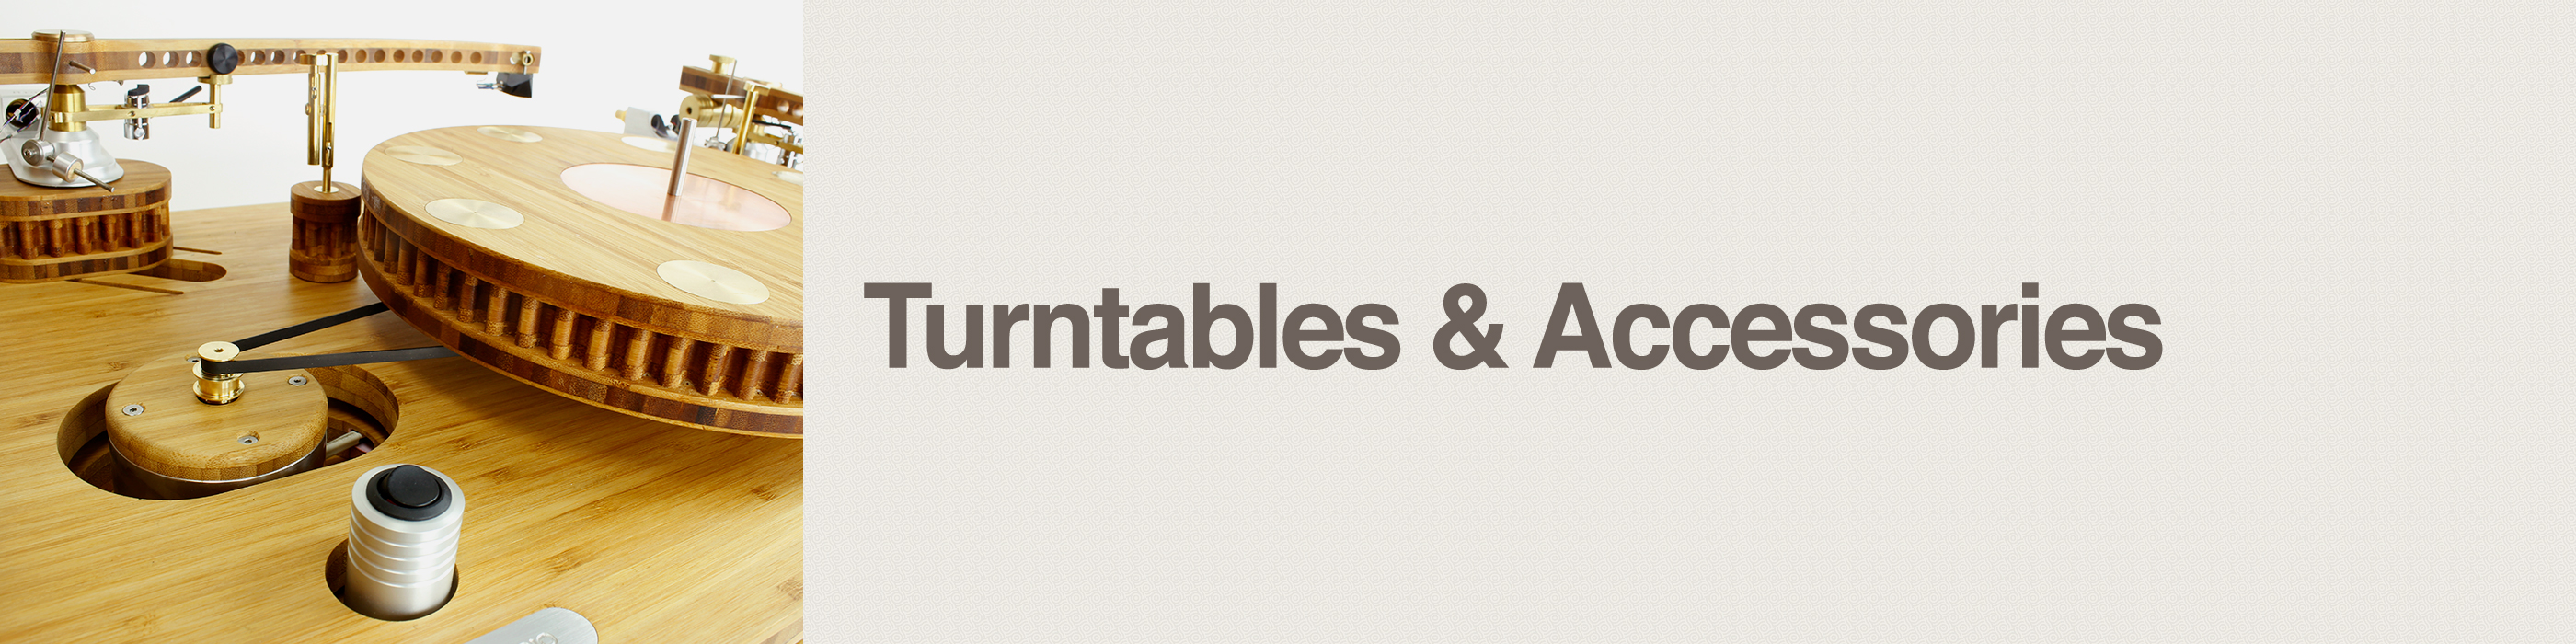 turntabes and accessories header